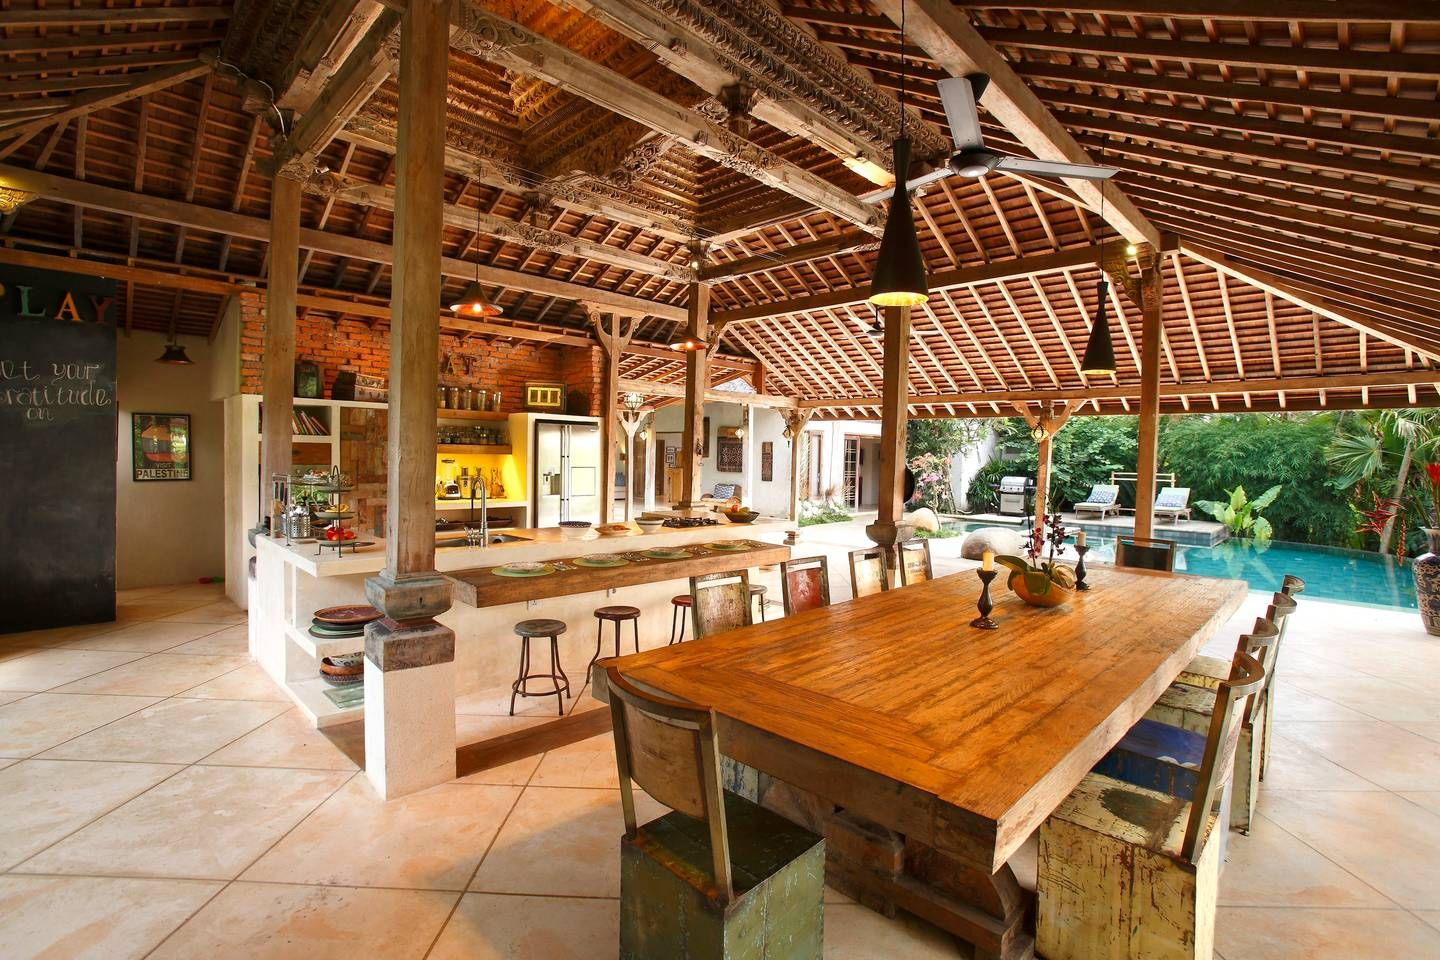 Rustica Cucina Bali Eco Luxury Family Friendly Villa Houses For Rent In Ubud Bali